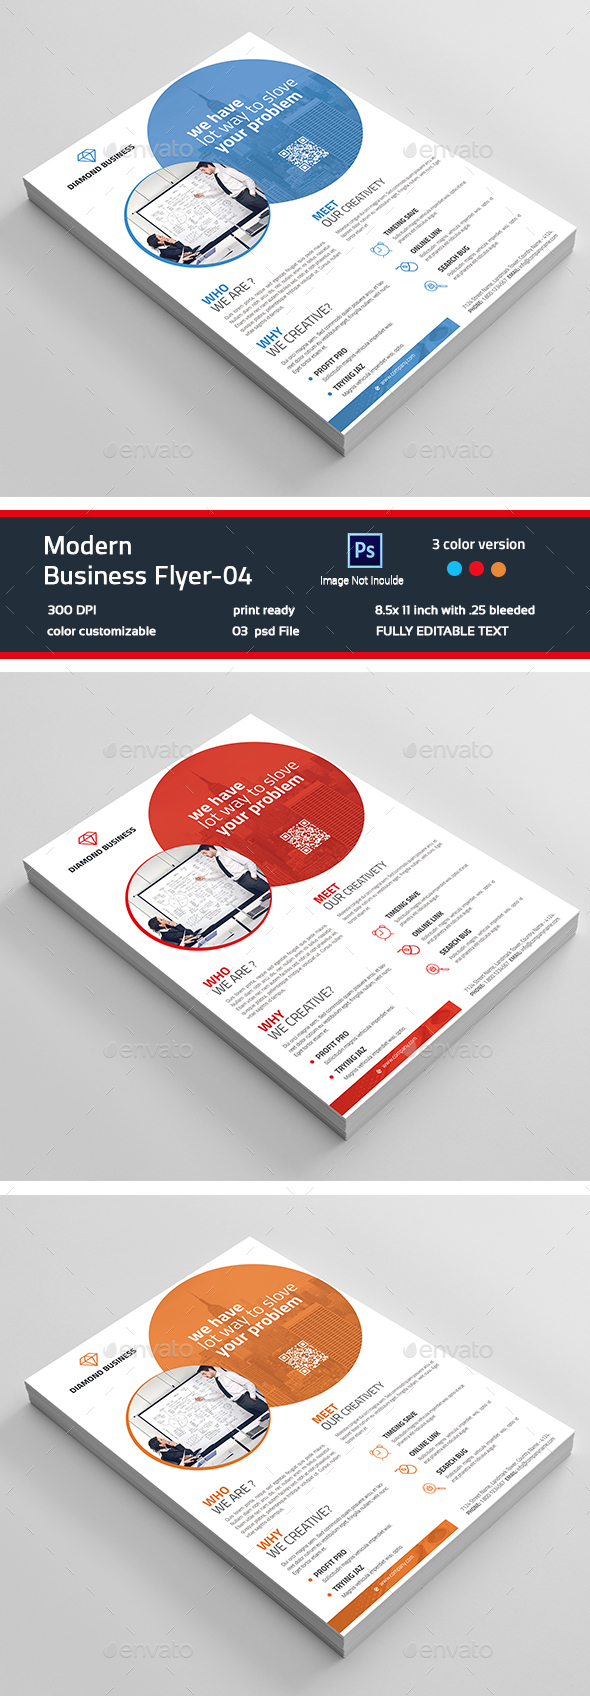 Minimal Business Flyer-04 - Corporate Flyers